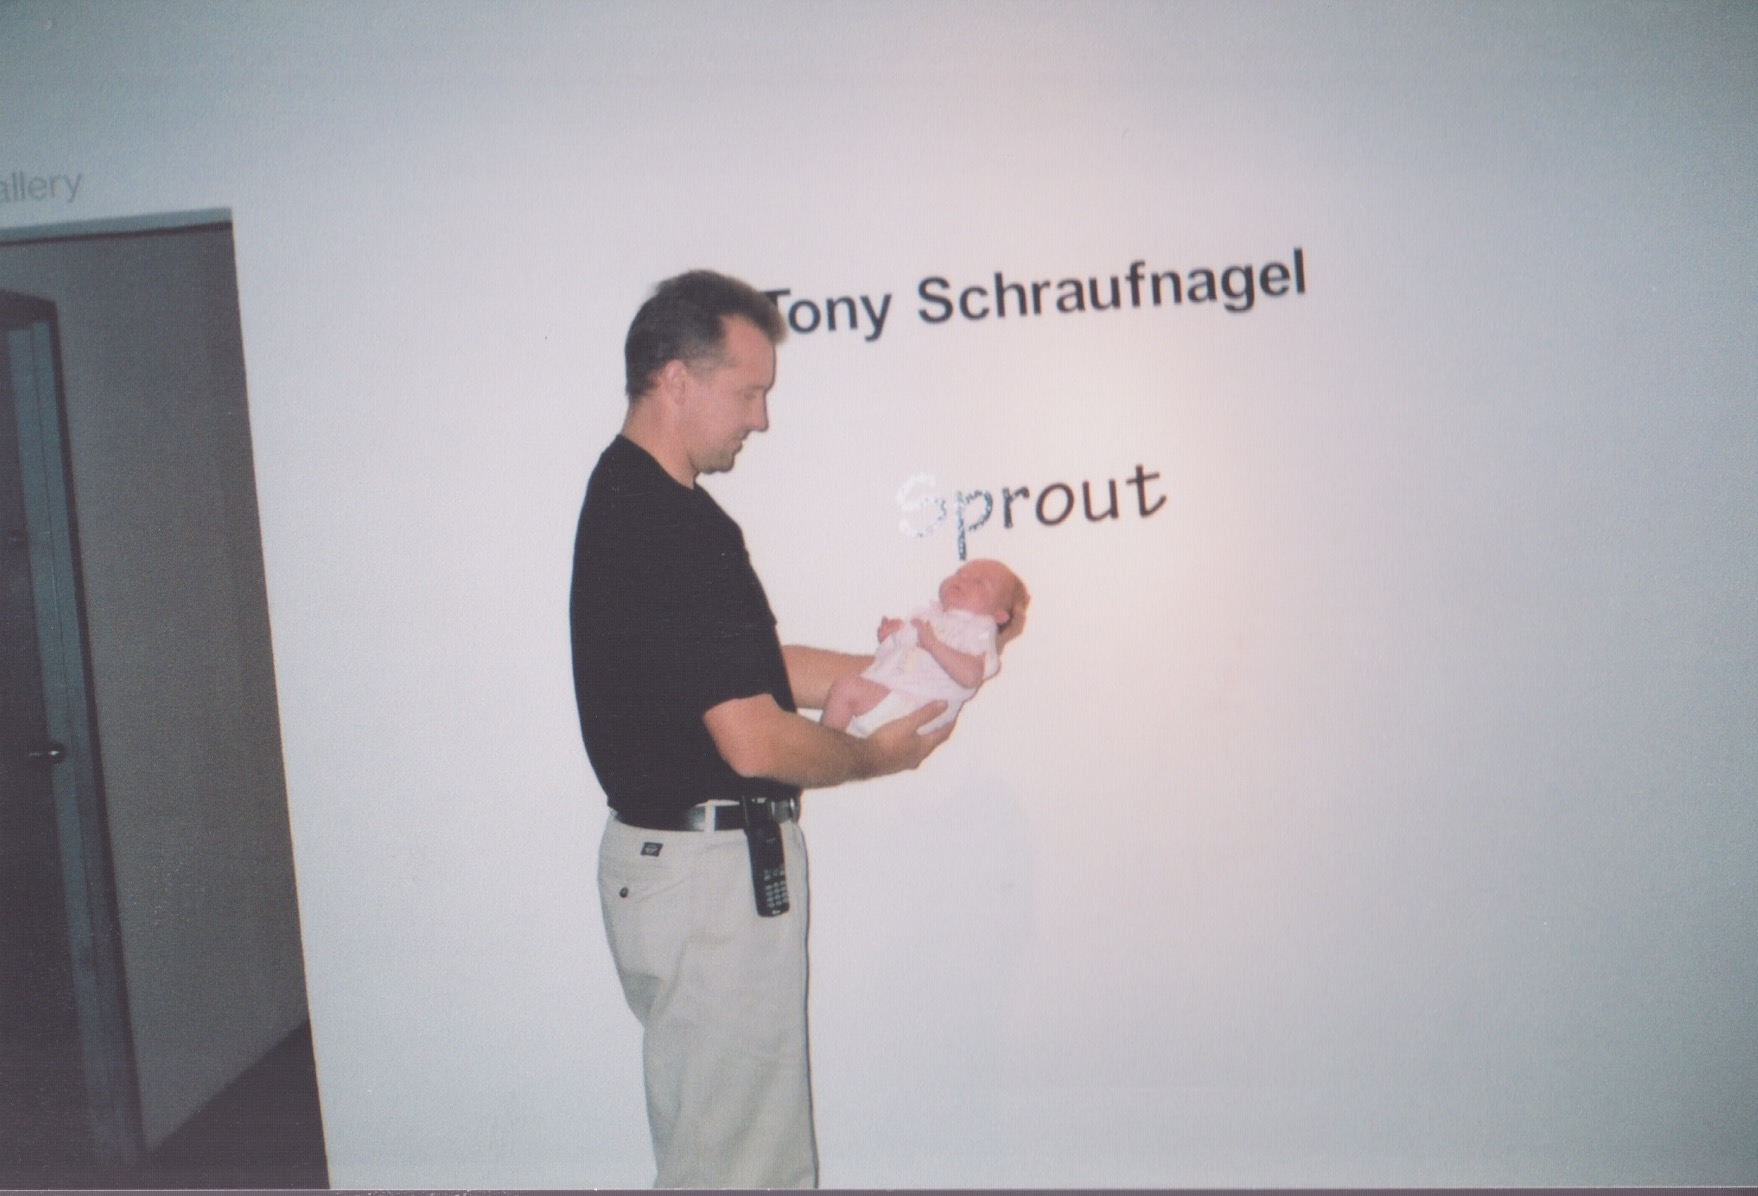 Tony Schraufnagel at his solo exhibition, Sprout, holding his eldest daughter one week after she was born.